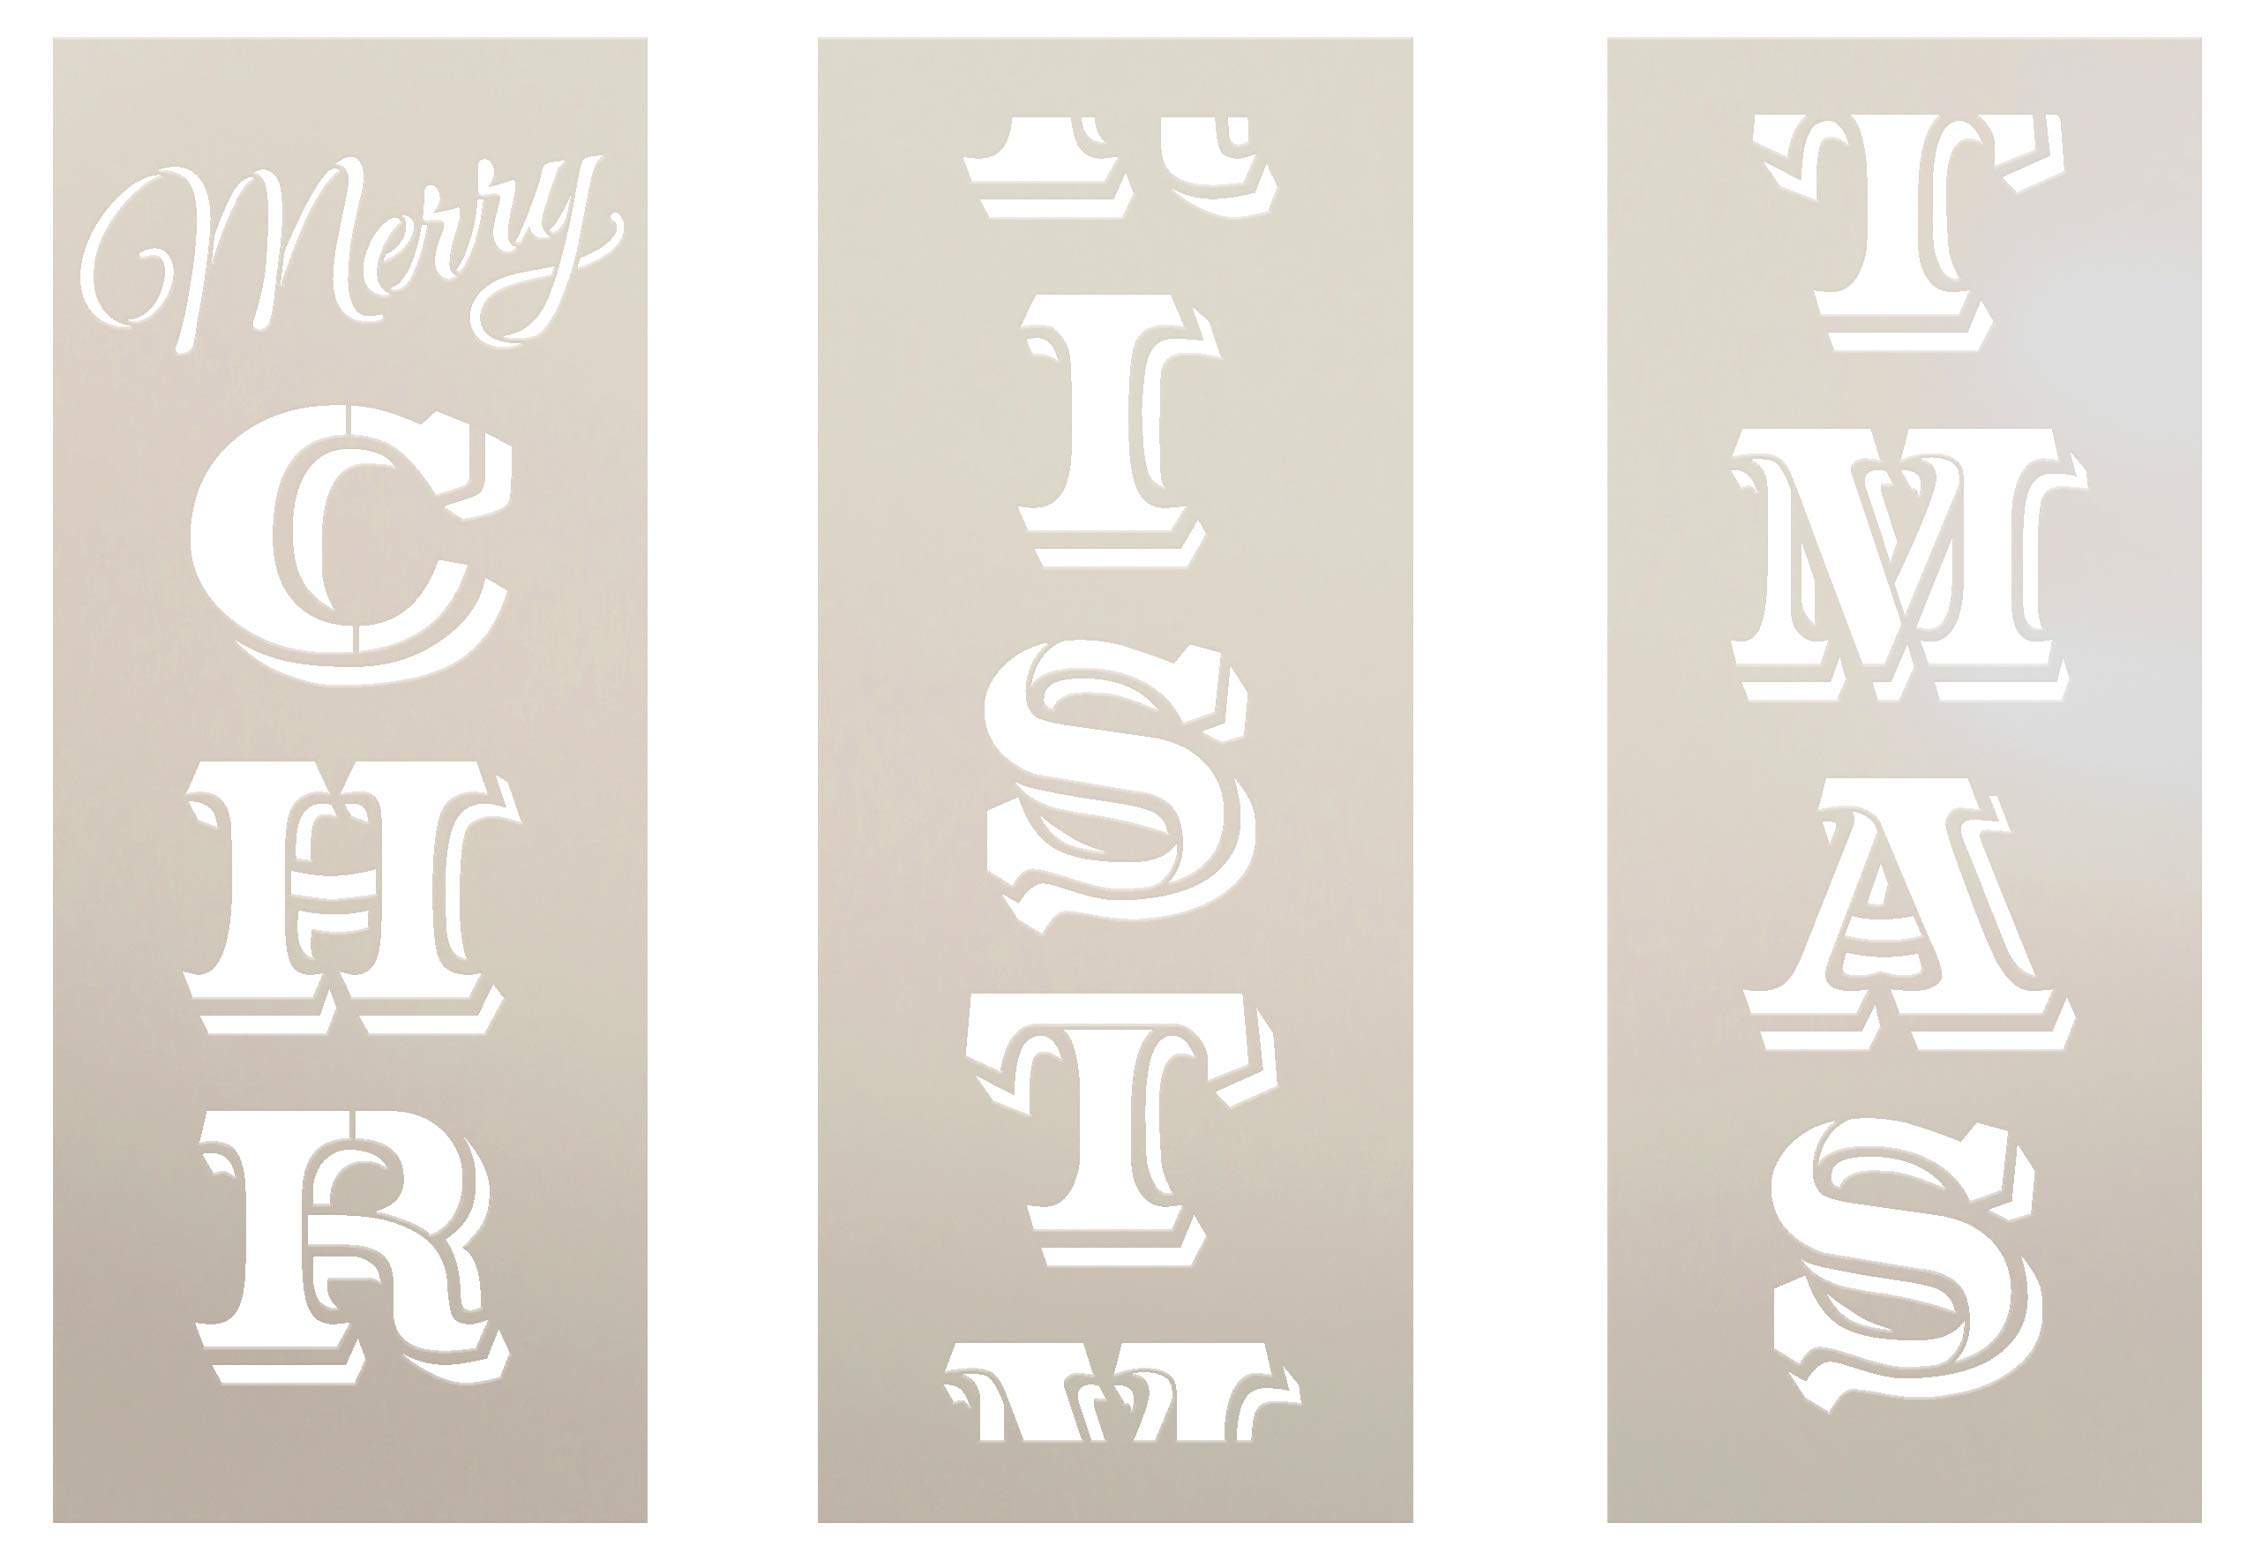 Merry Christmas Stencil by StudioR12 | Reusable 3 Part Mylar Template Paint Tall Vertical Wood Sign | Craft Seasonal Rustic Farmhouse Home Decor | DIY Extra Large Holiday Porch Leaner Gift (72'' x 12'') by STUDIOR12 STUDIO R12